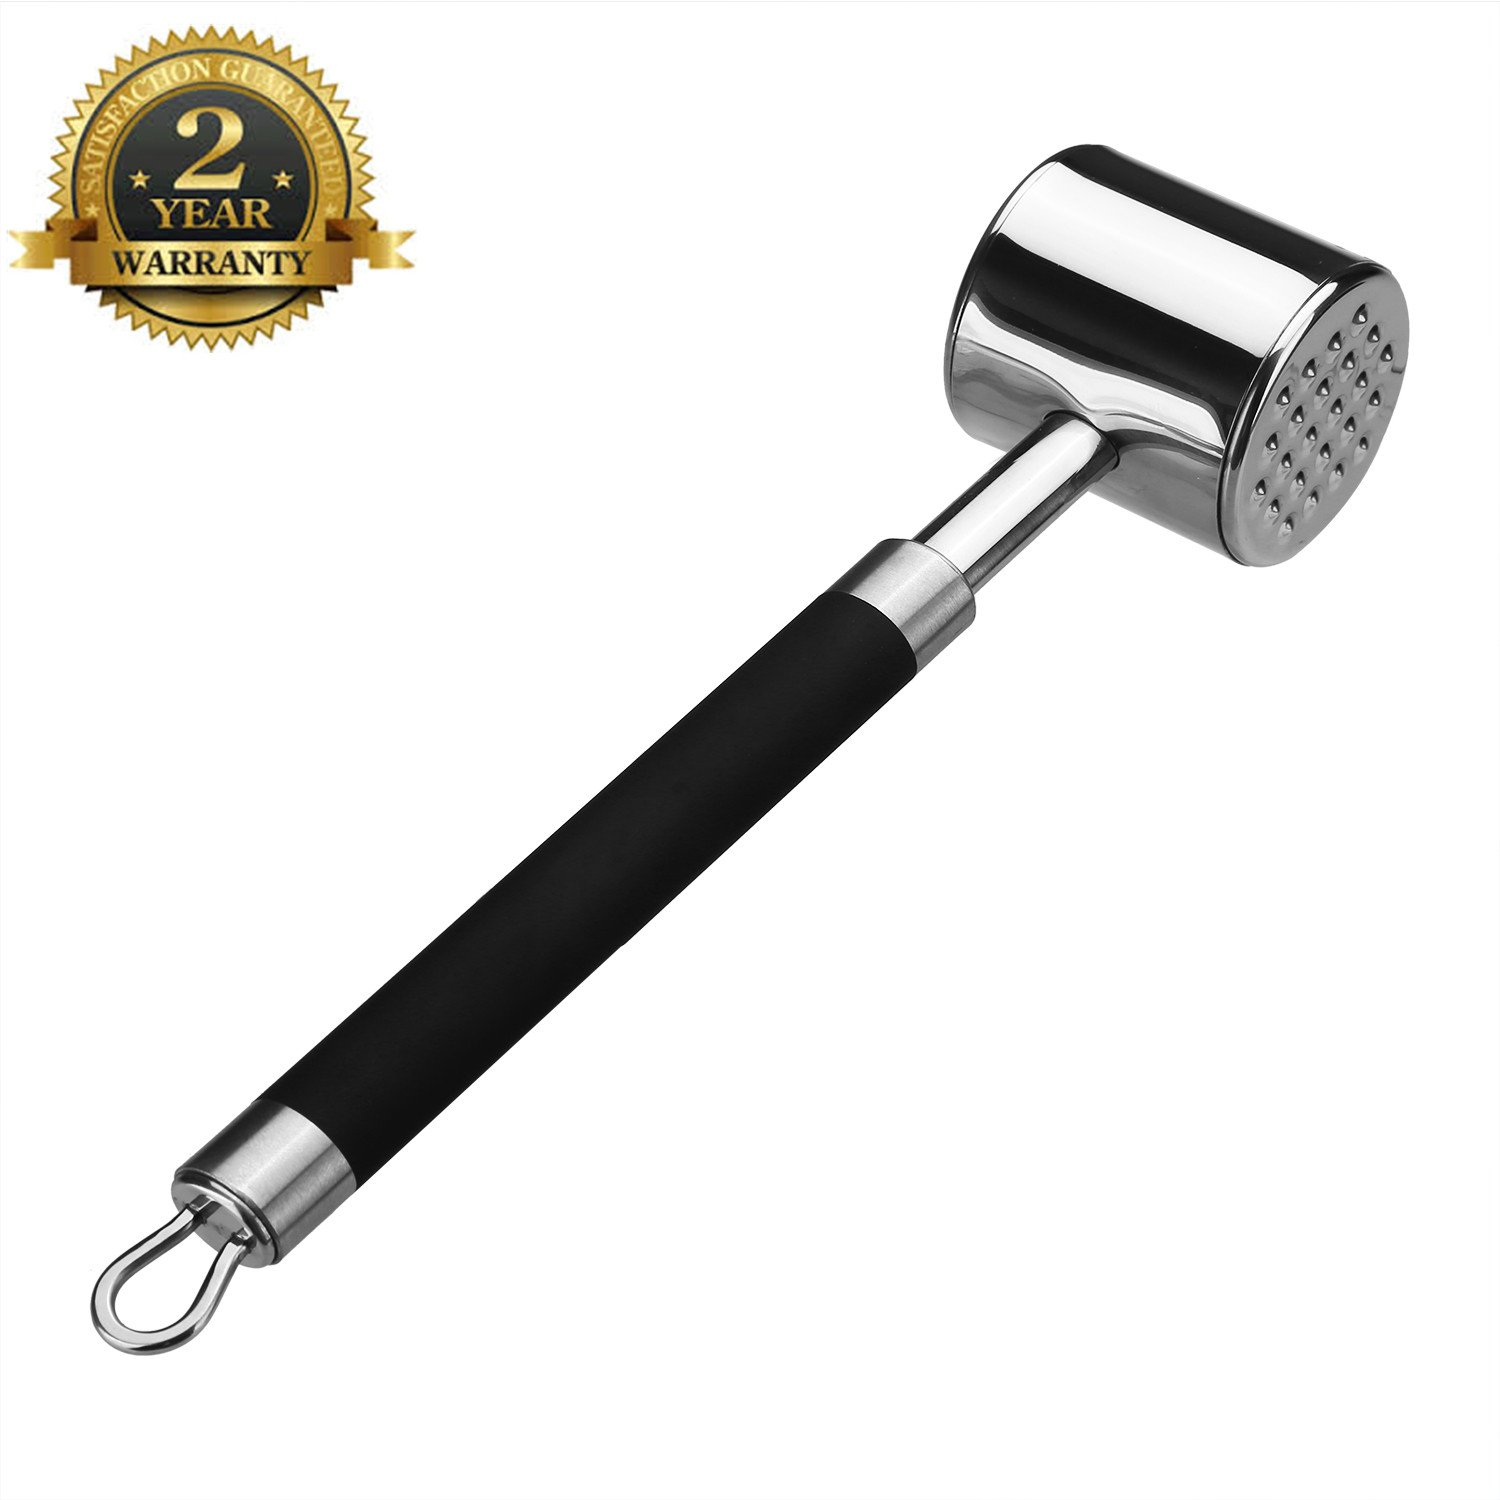 Meat Tenderizer,MayPal Meat Tenderizer Mallet Tool-Dishwasher Safe Meat Tenderizer Powder With Professional Non Slip Silicone Handle for Pounding